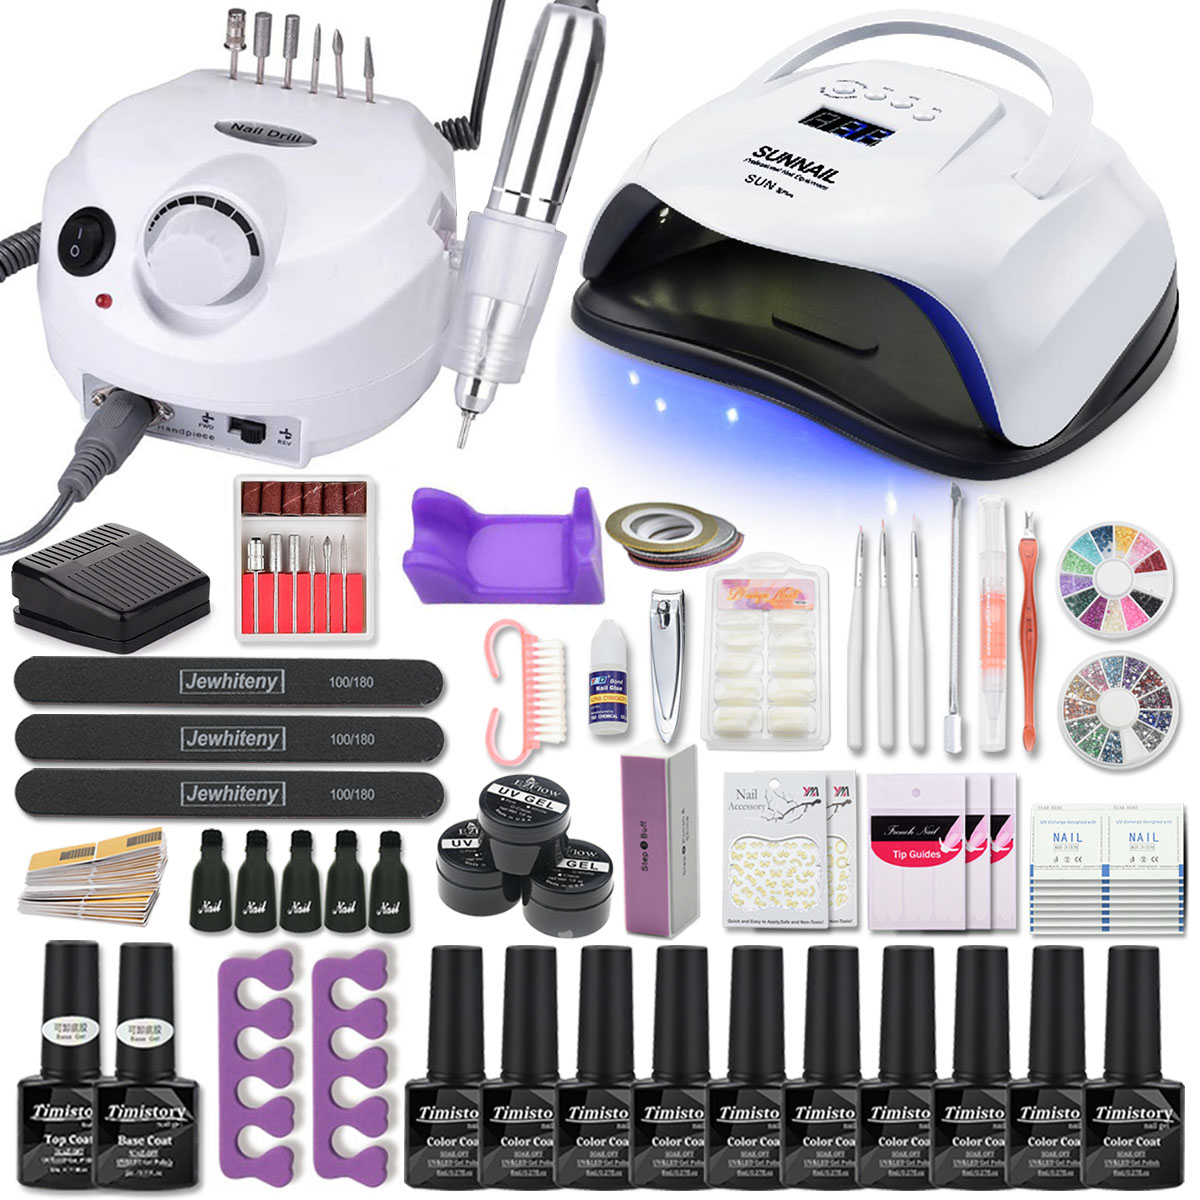 Manicure-Set Nail-Drill-Machine Acrylic-Nail-Kit Nail-Polish with 120/80/54w 35000RPM title=